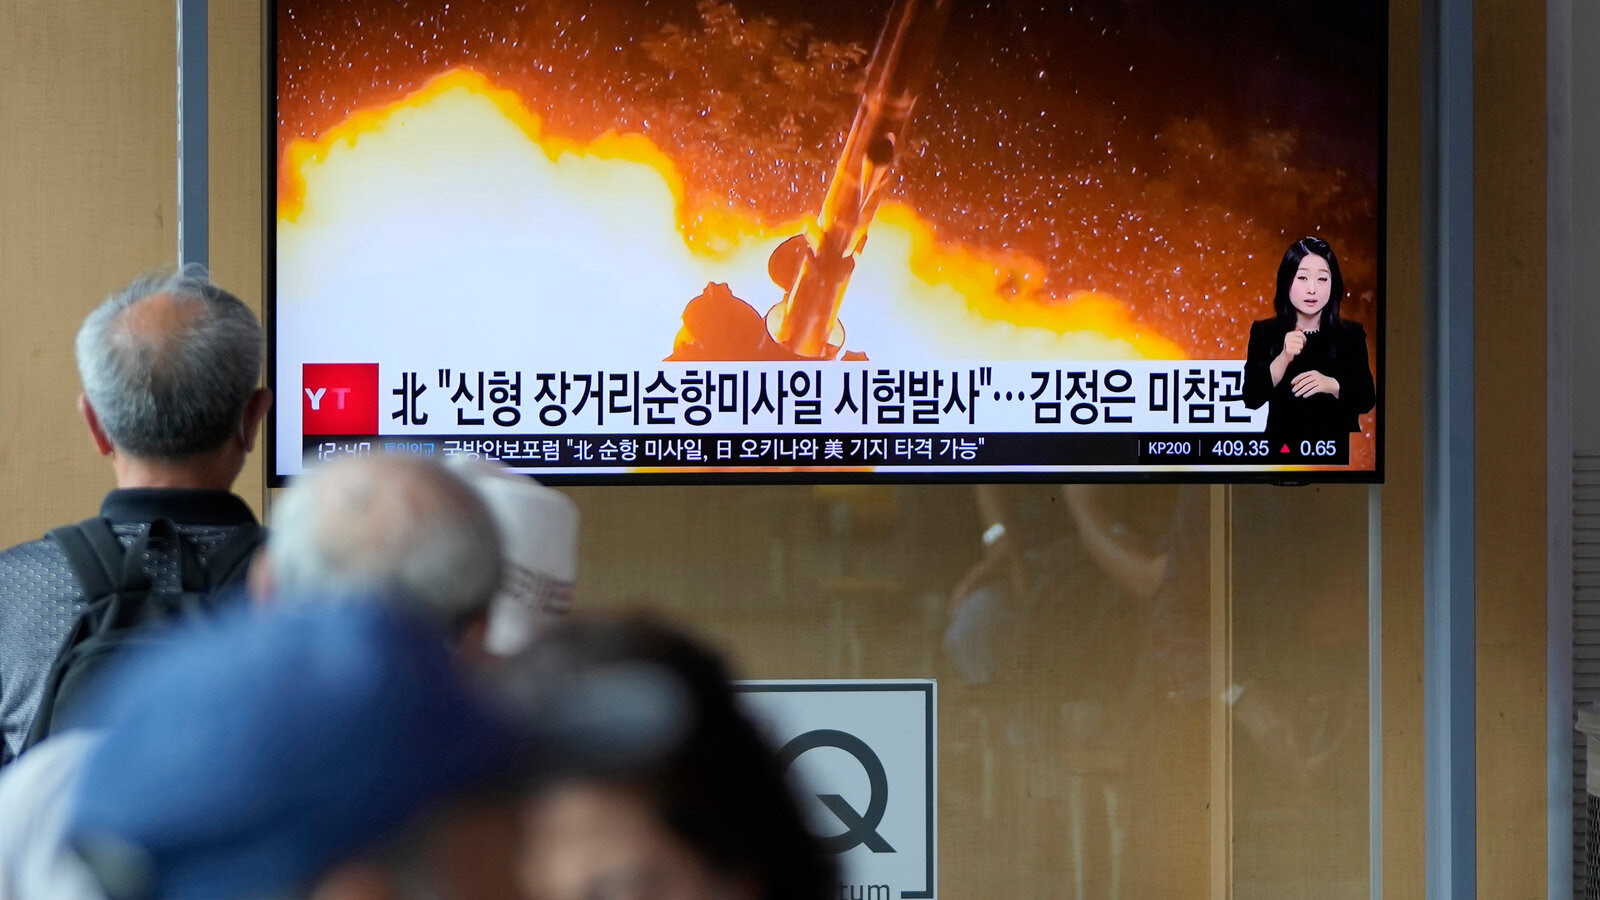 North Korea Fires 2 Ballistic Missiles as Arms Rivalry Mounts